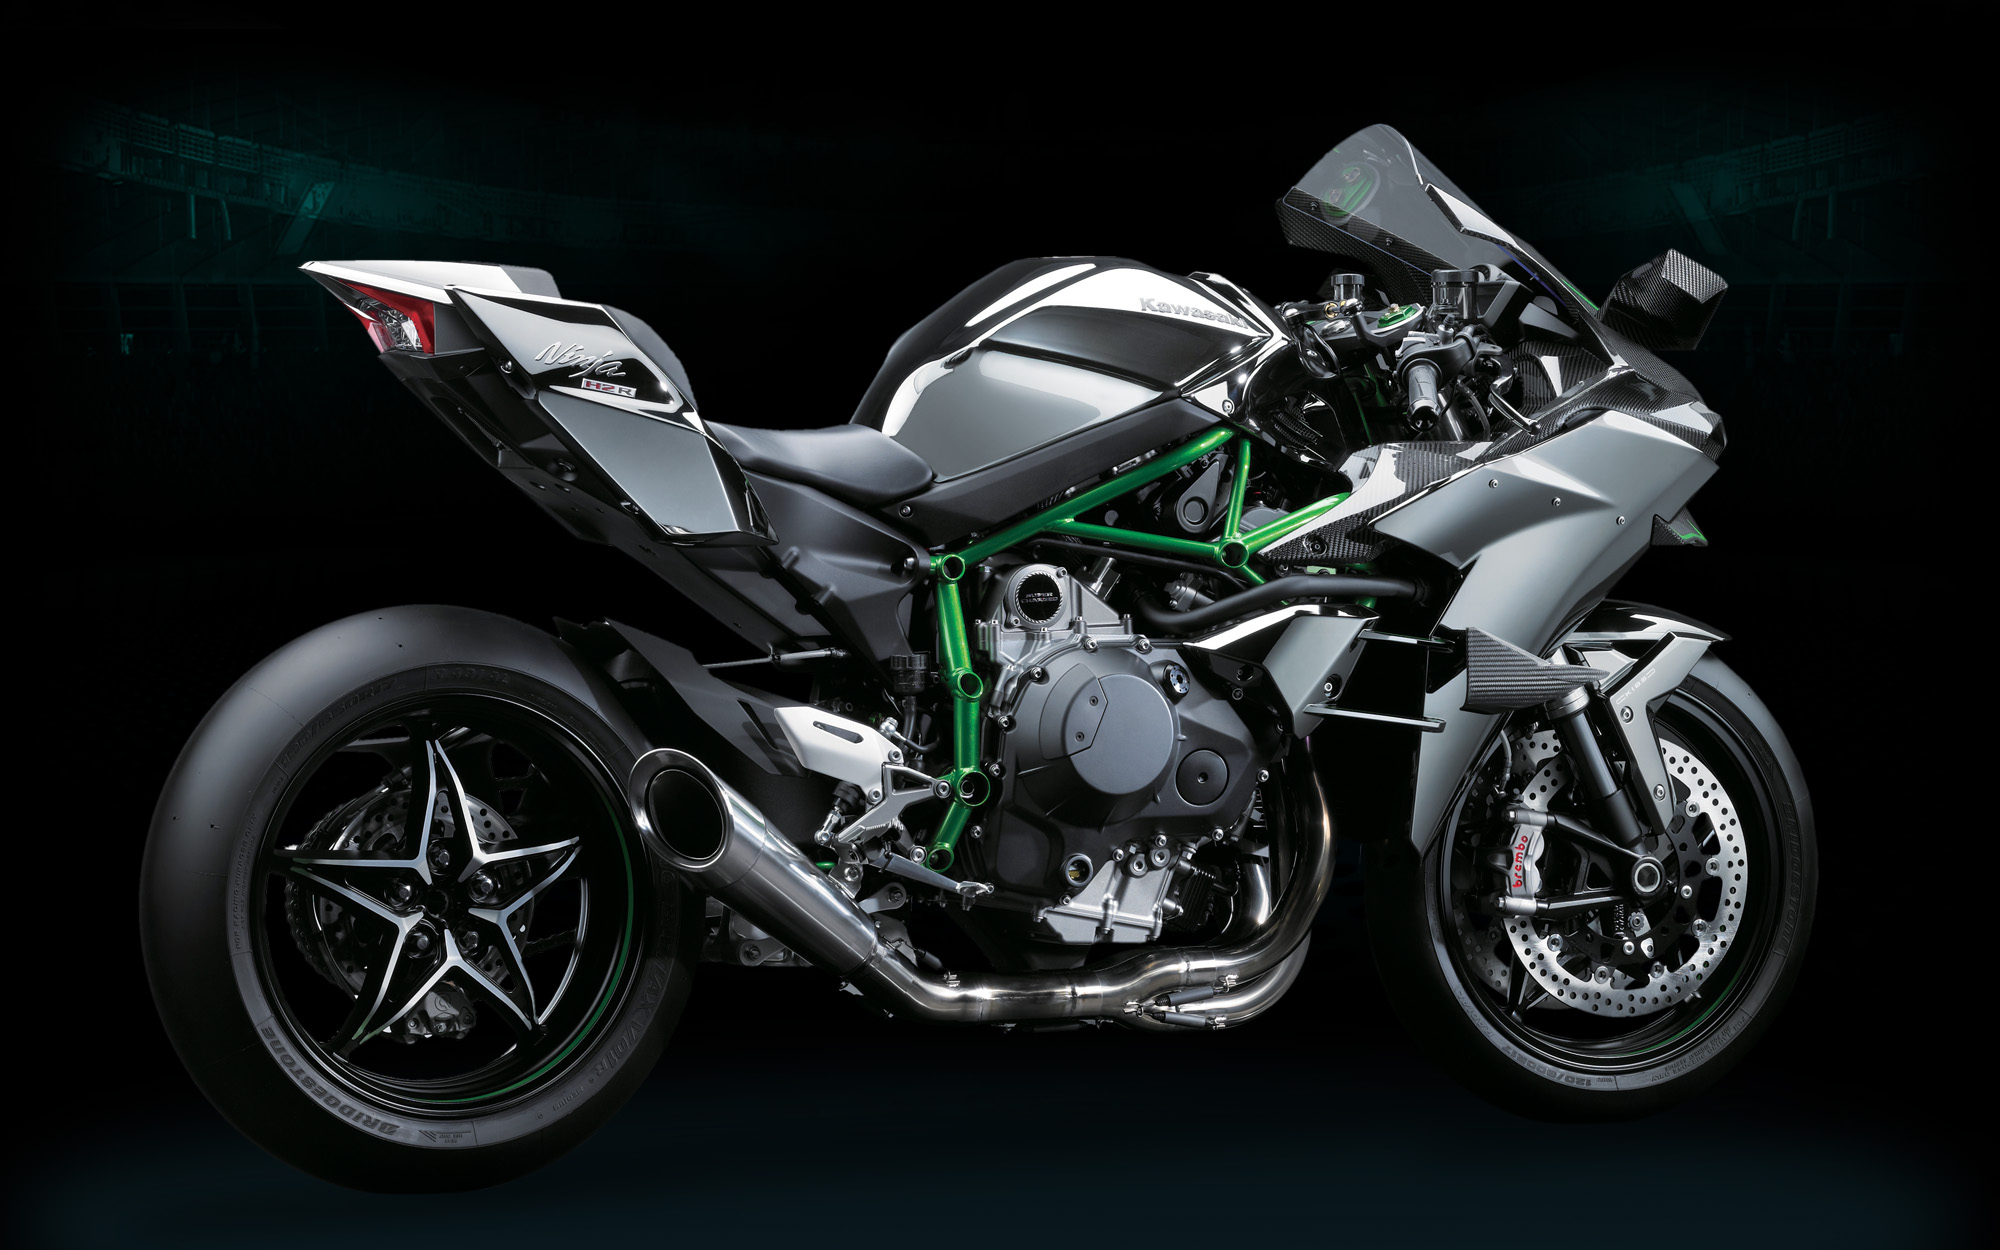 kawasaki ninja h2r pics and video show a game changer - autoevolution